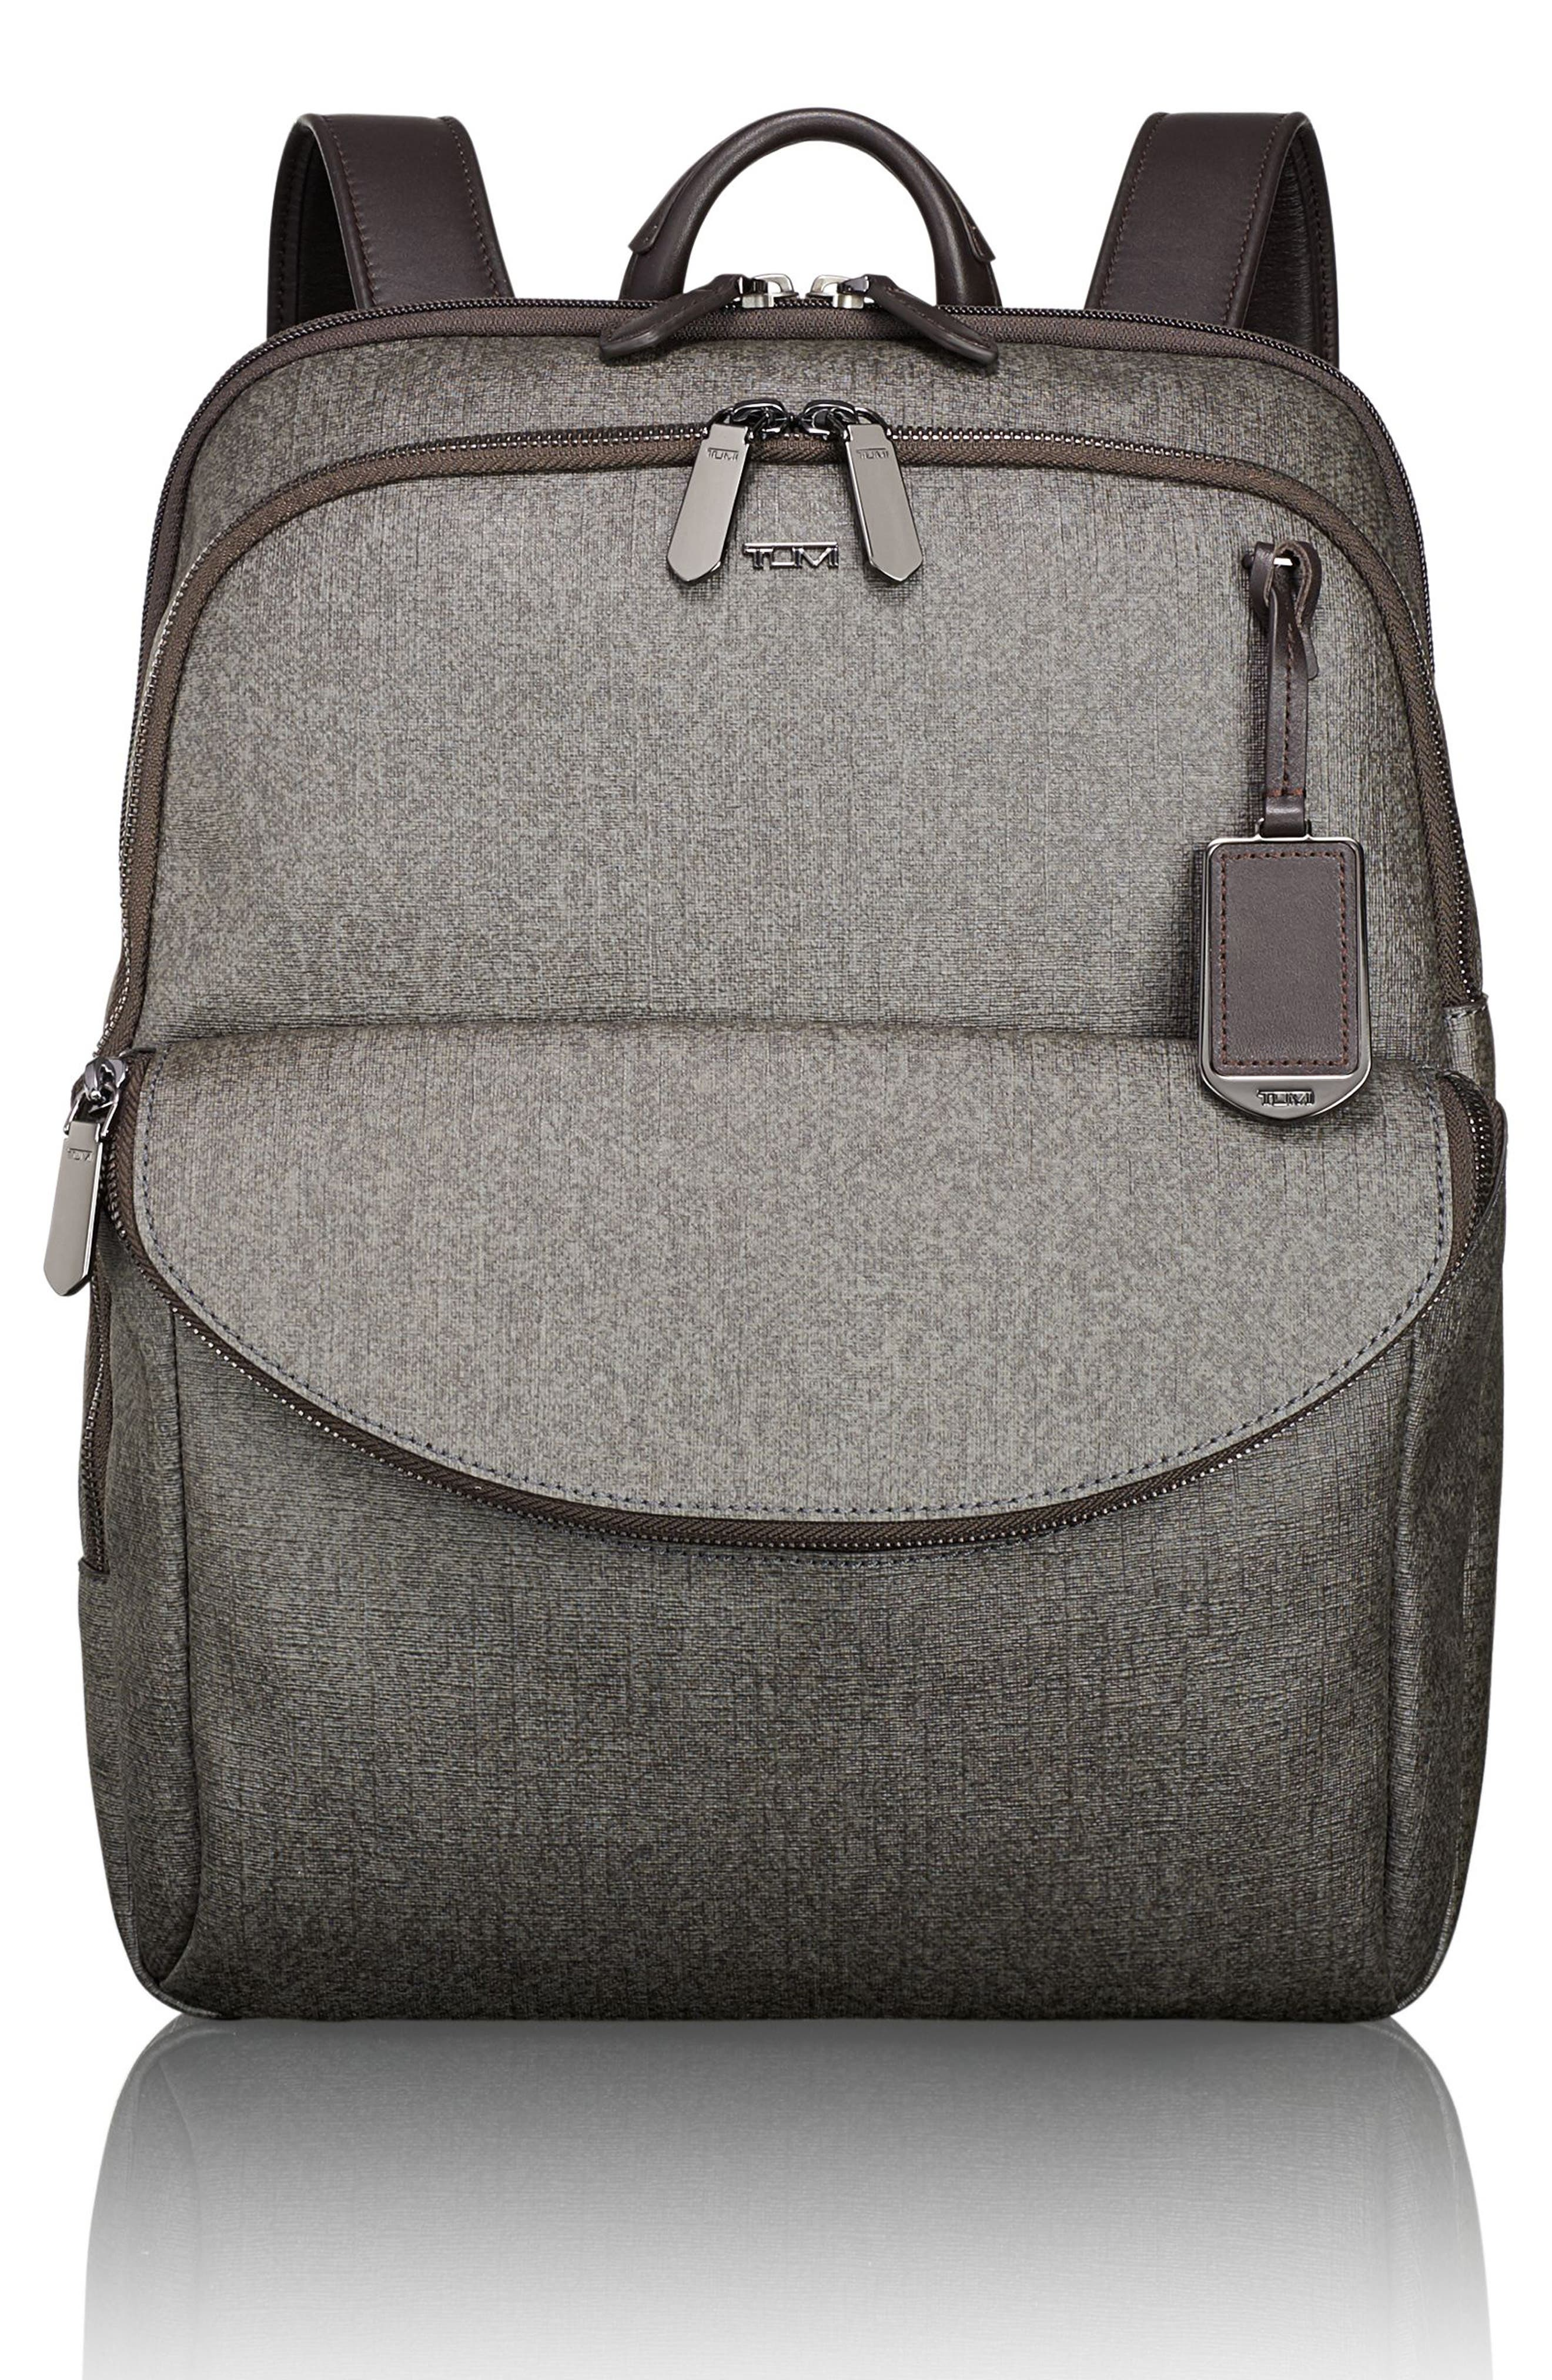 Alternate Image 1 Selected - Tumi Sinclair - Hanne Coated Canvas Laptop Backpack